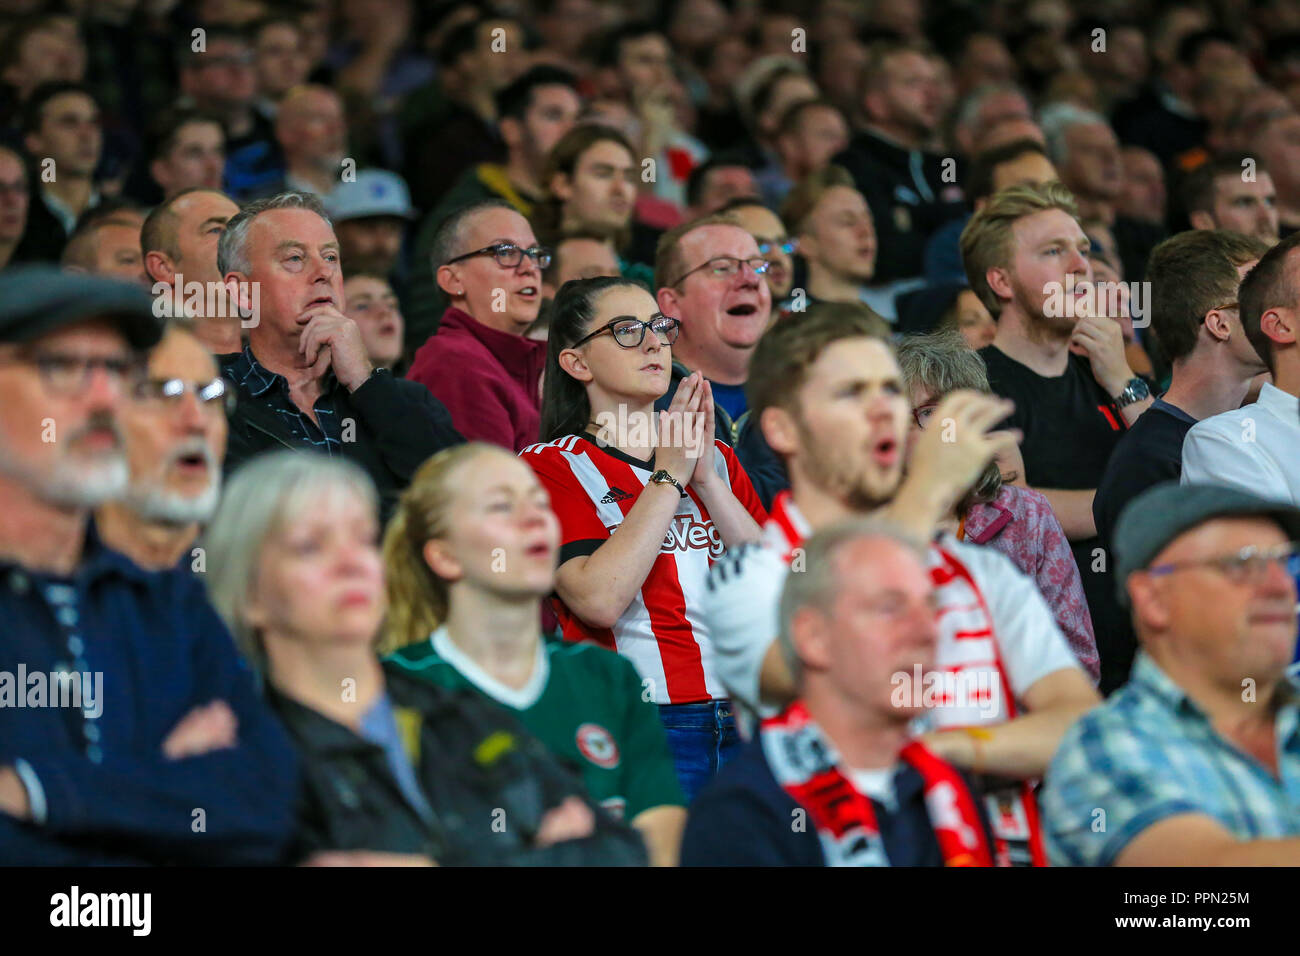 London, UK. 26th September, 2018. Carabao EFL Cup, Third round, Arsenal v Brentford ; Brentford fans react at the Emirates.  Credit:  Georgie Kerr/News Images  English Football League images are subject to DataCo Licence Credit: News Images /Alamy Live News Stock Photo